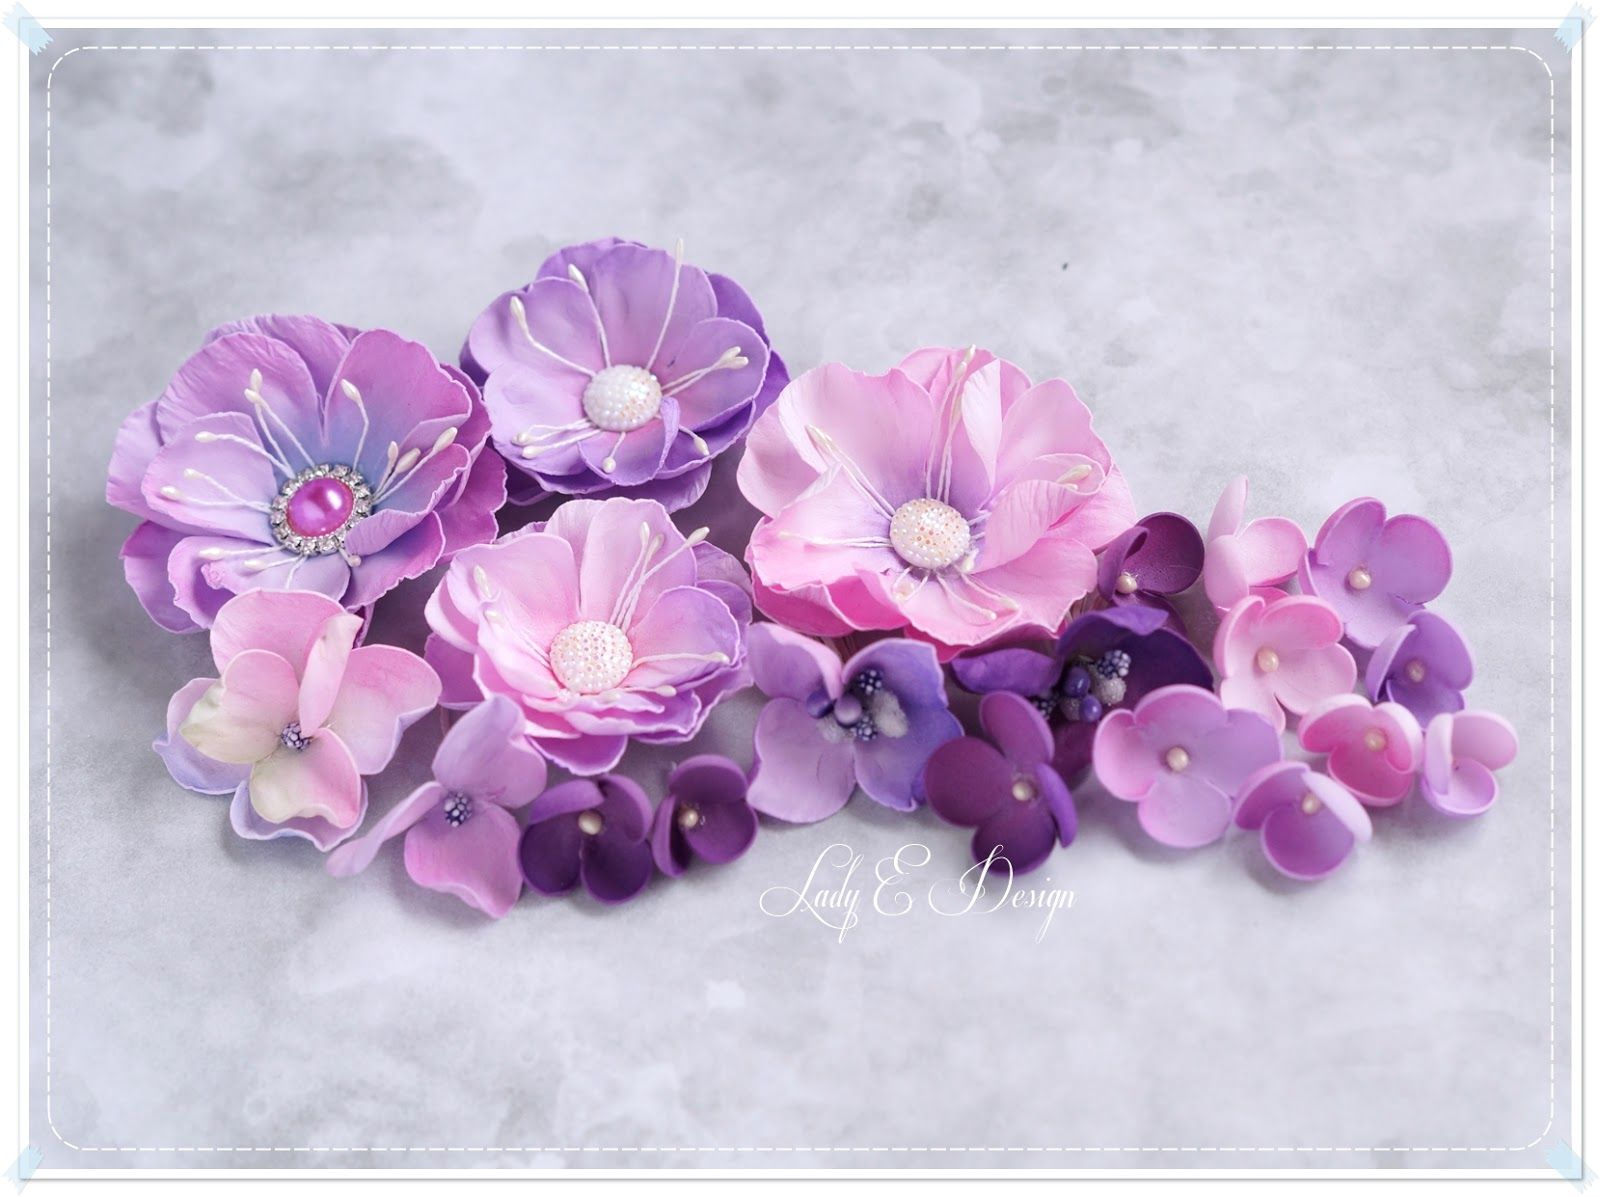 PAPERCRAFT PINK AND LILAC FLOWERS  FOR CARDS AND CRAFTS